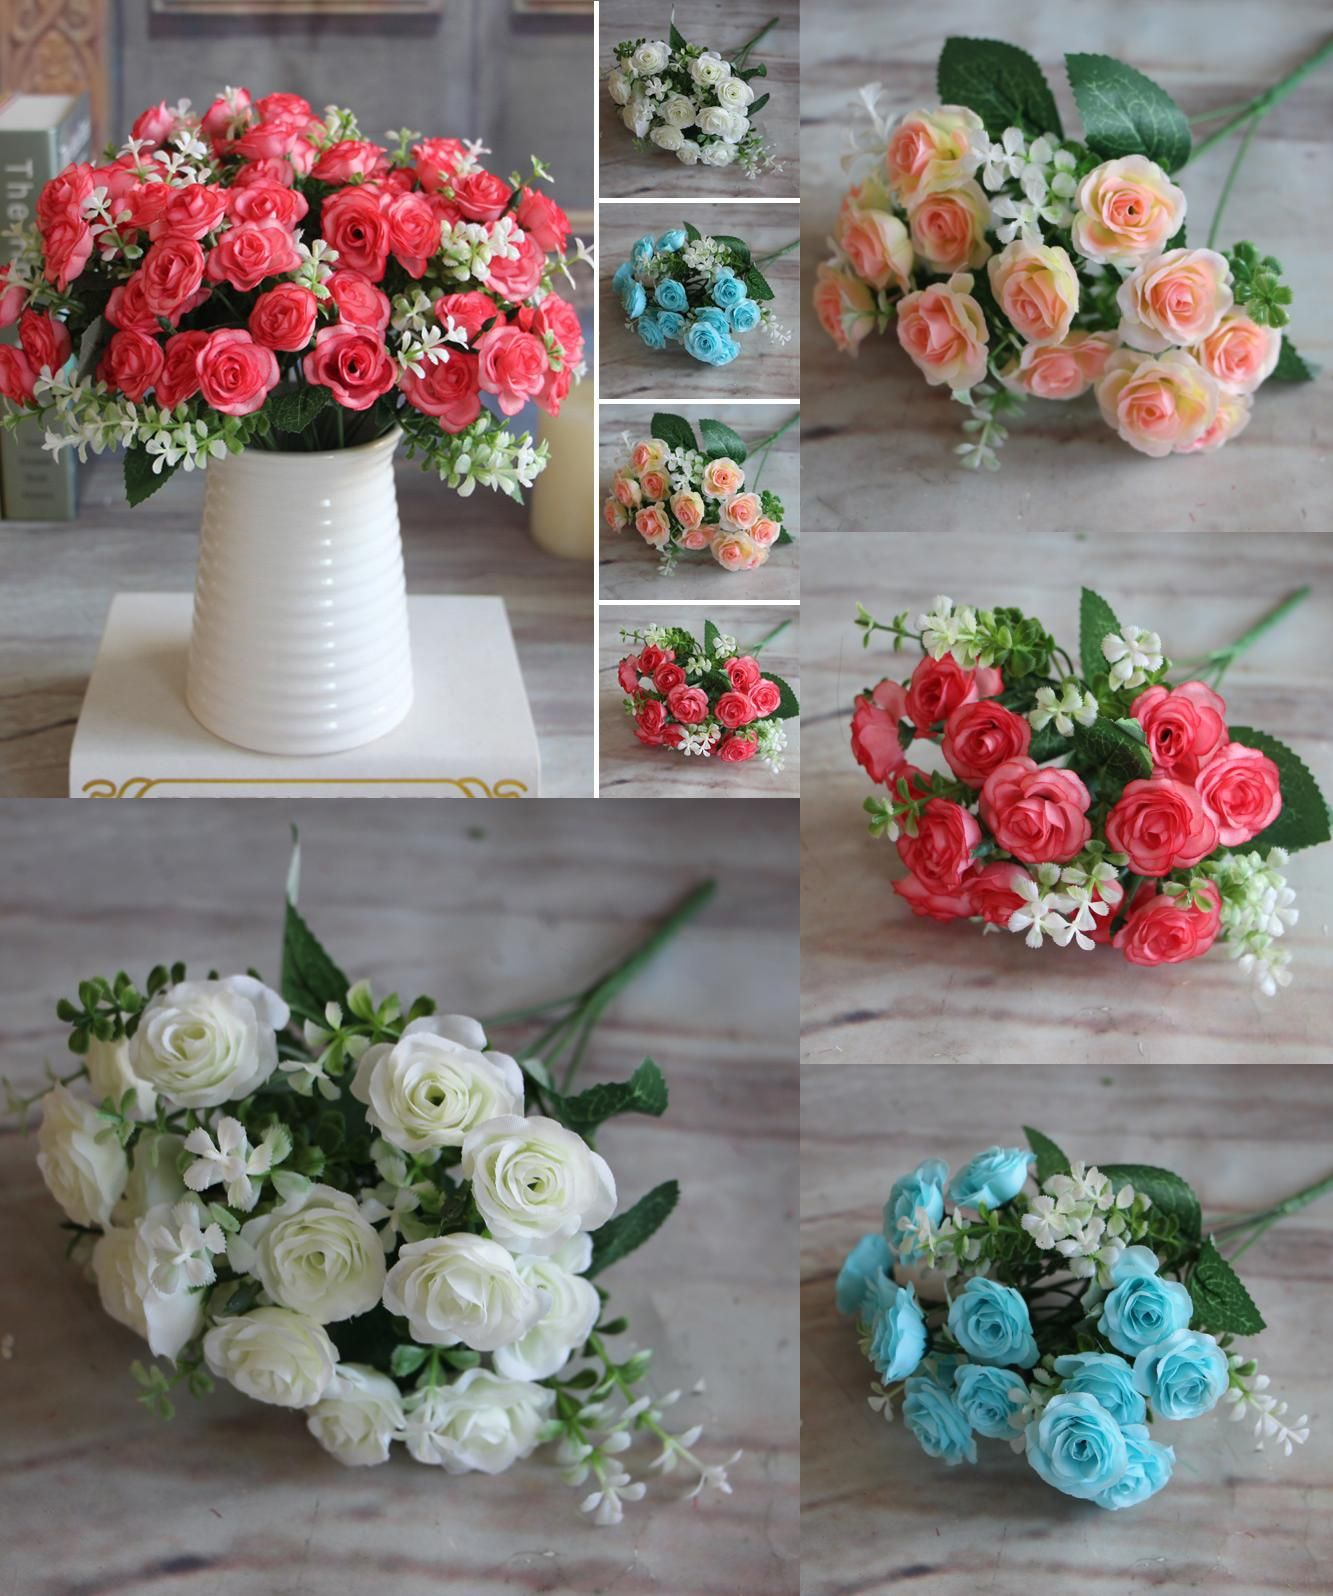 Visit to buy pretty charming delightful buds bouquet mini rose